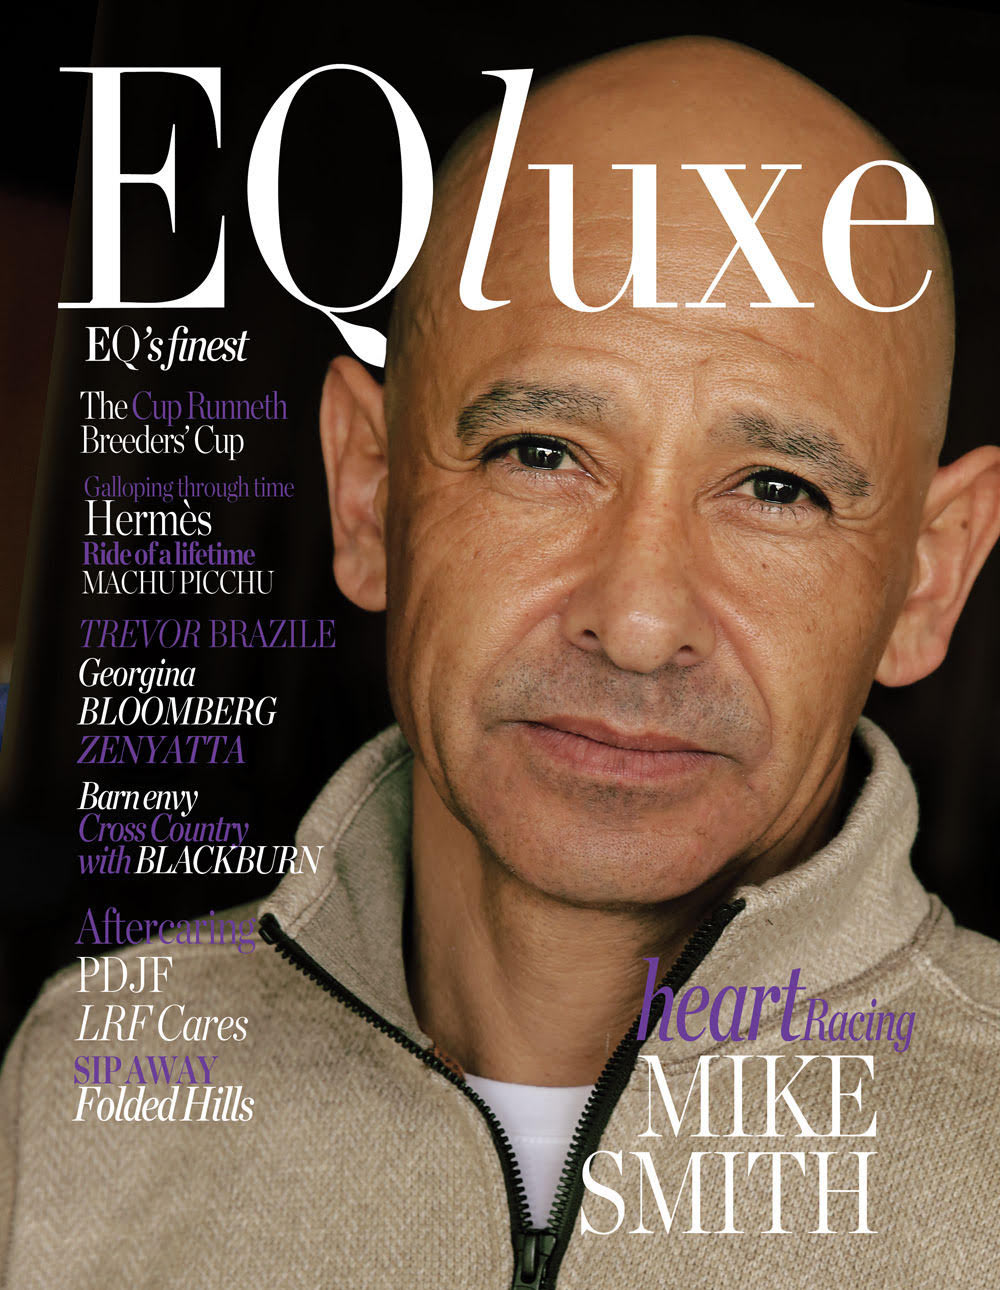 Mike Smith covers EQluxe magazine's iconic issue